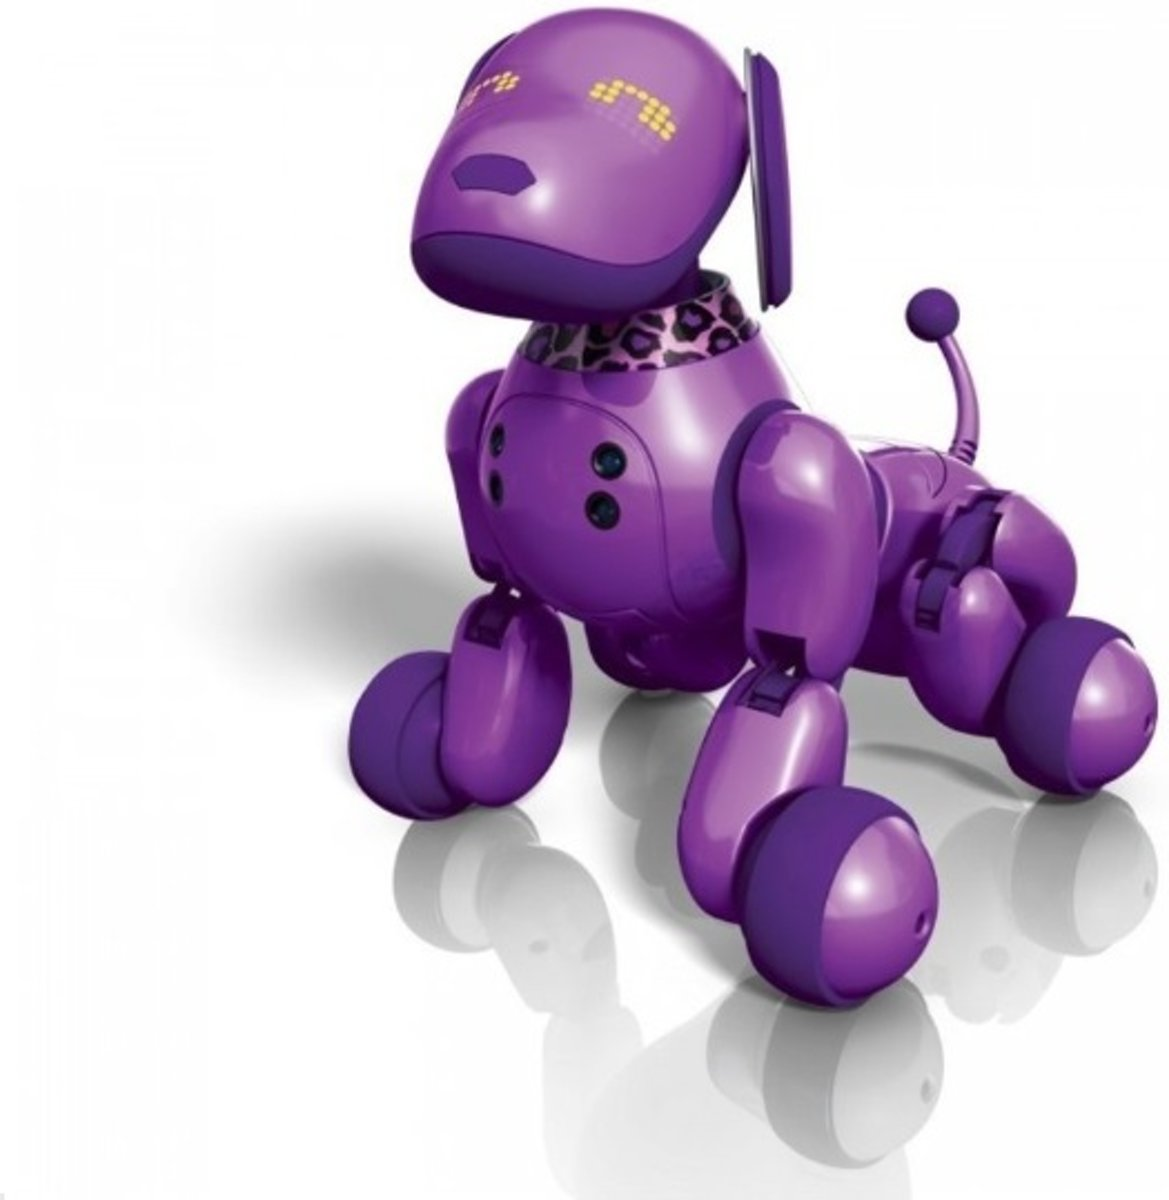 paarse hond - robot puppy - electronisch huisdier - incl. USB kabel